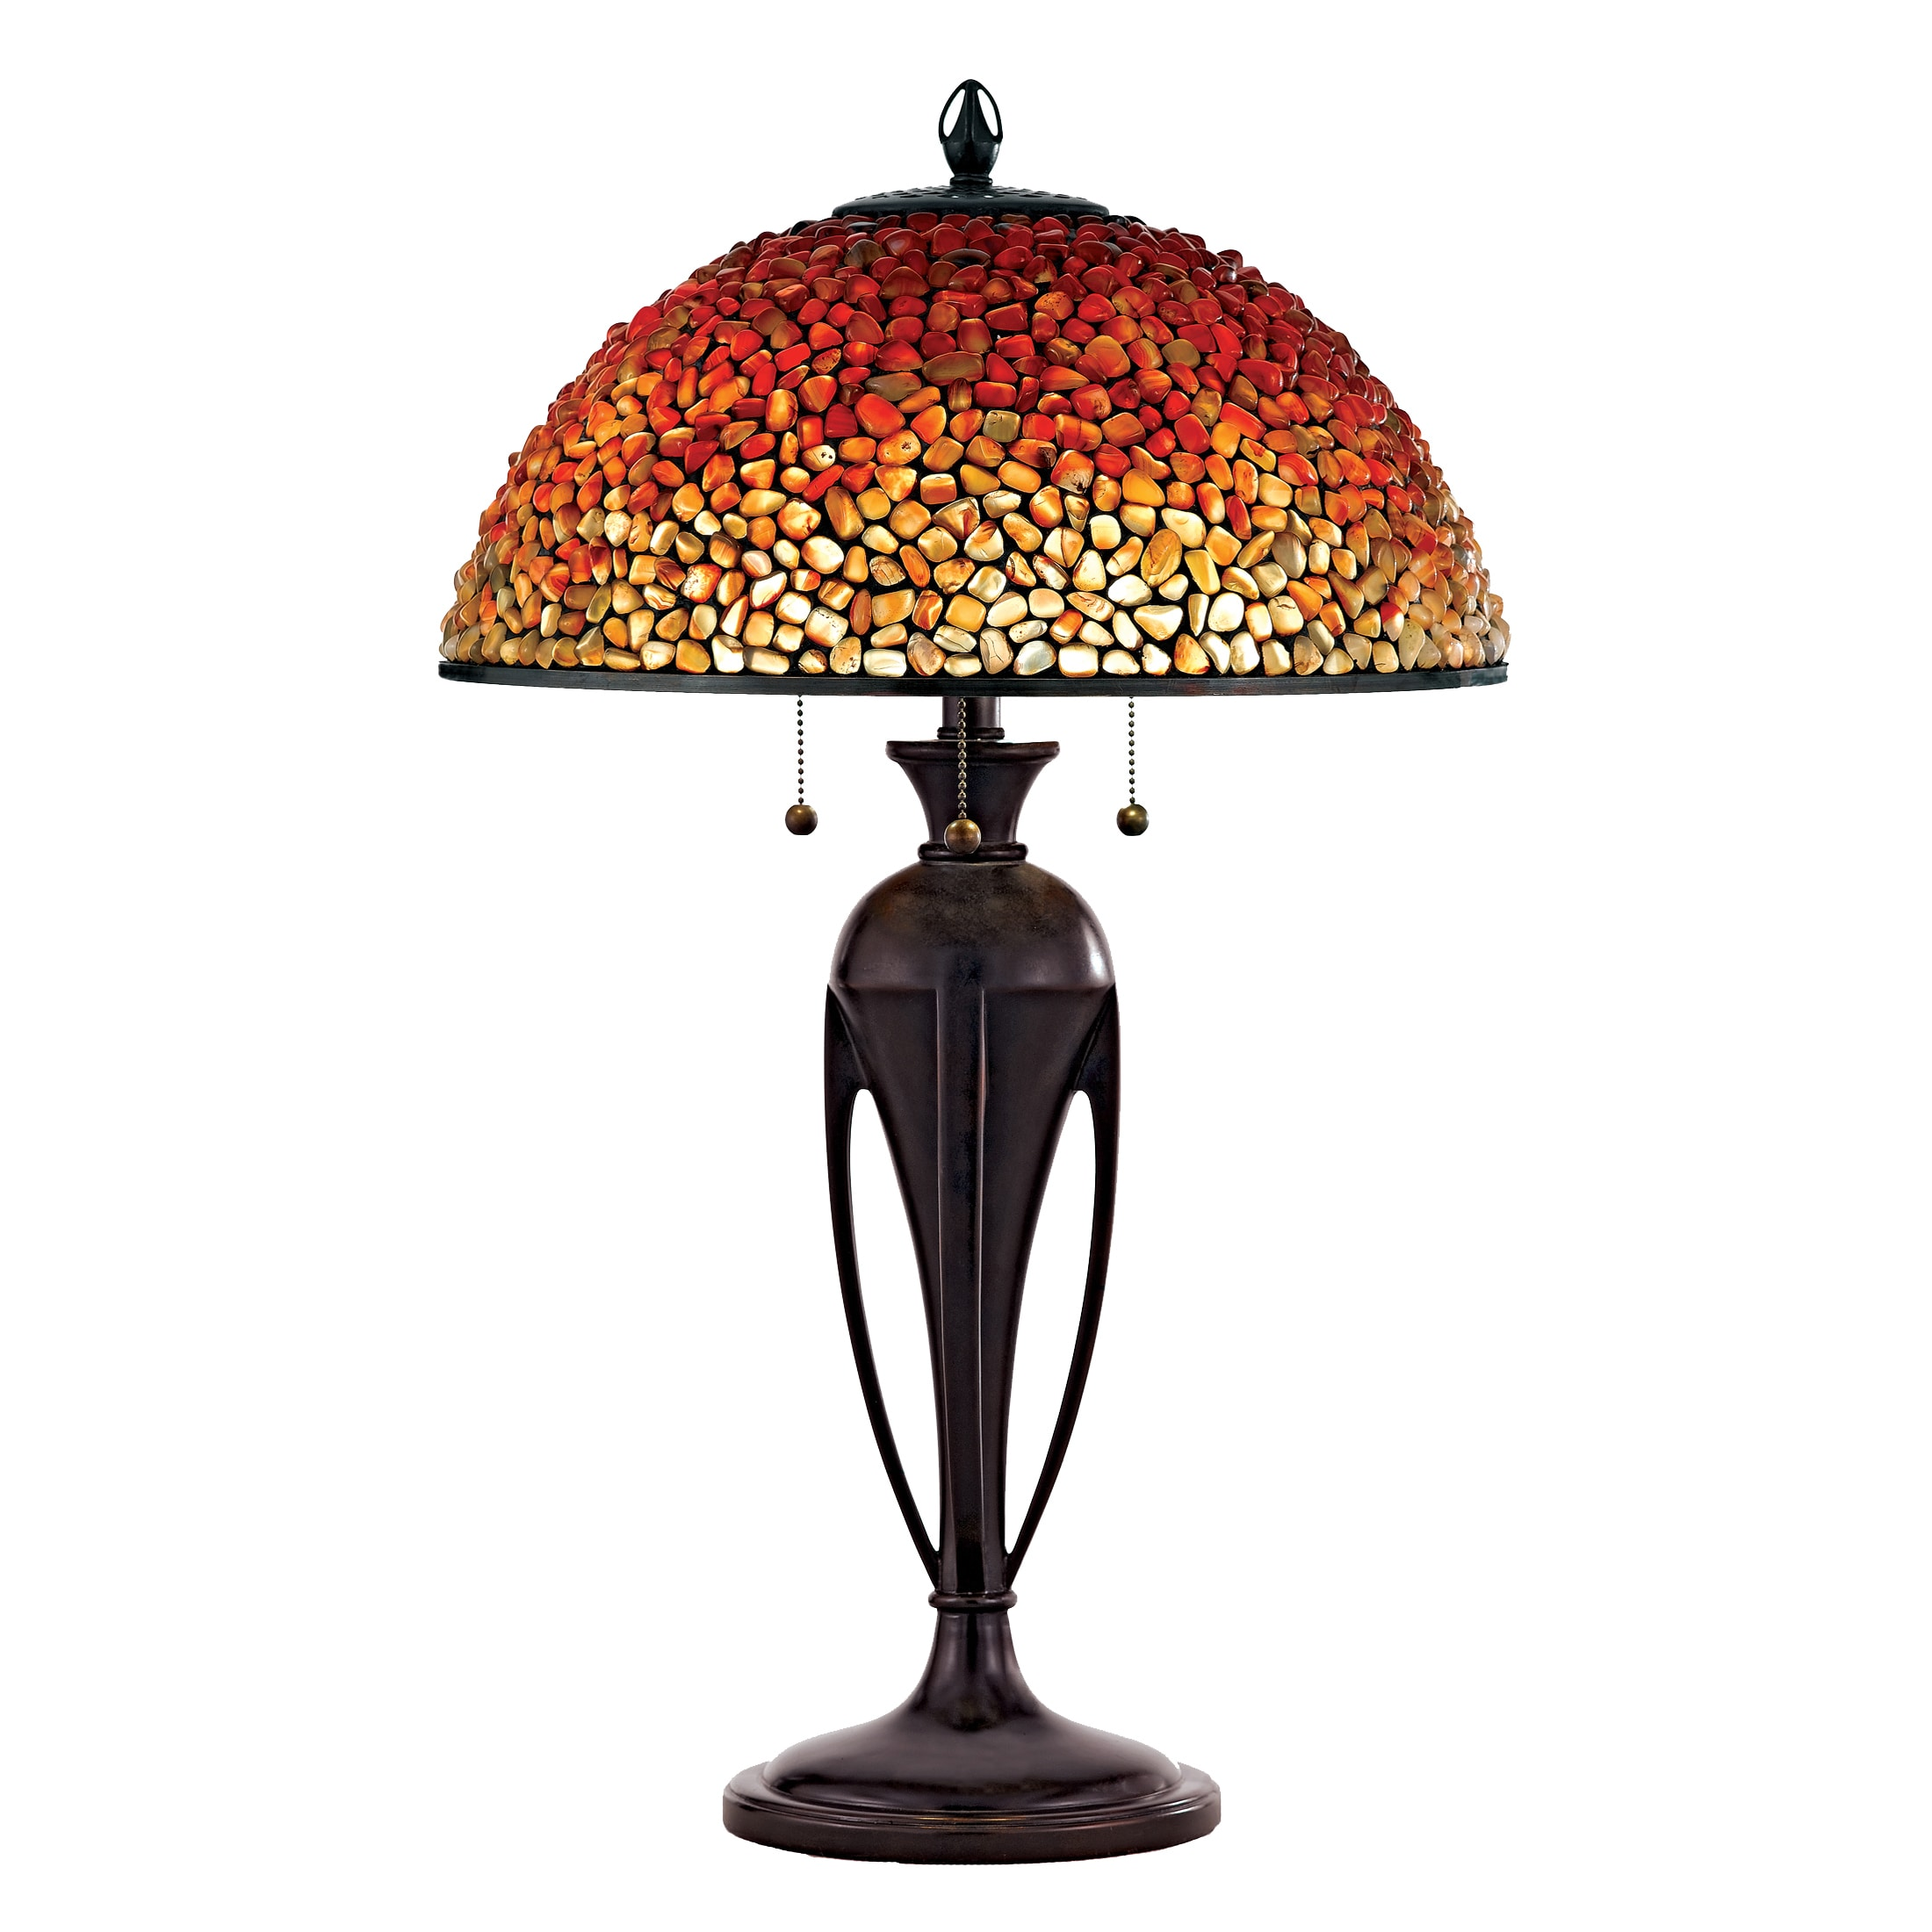 Quoizel Pomez with Burnt Cinnamon Finish Table Lamp